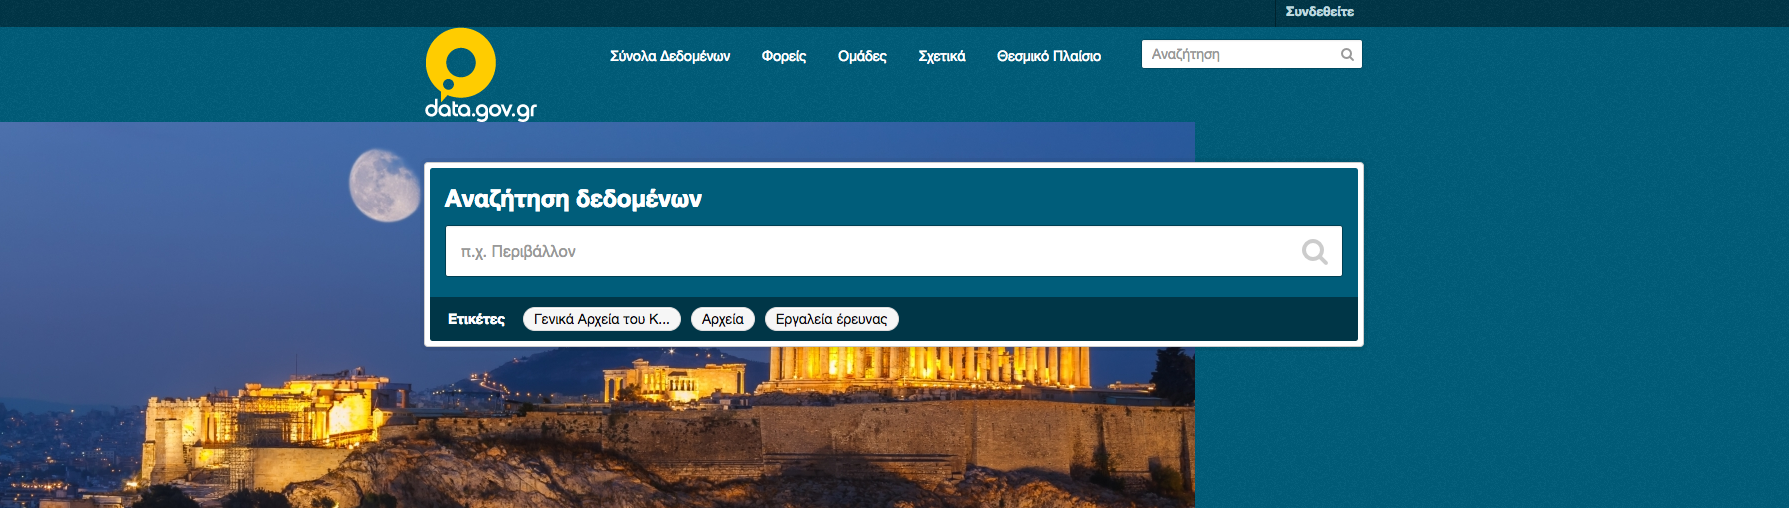 Screenshot of the website www.data.gov.gr